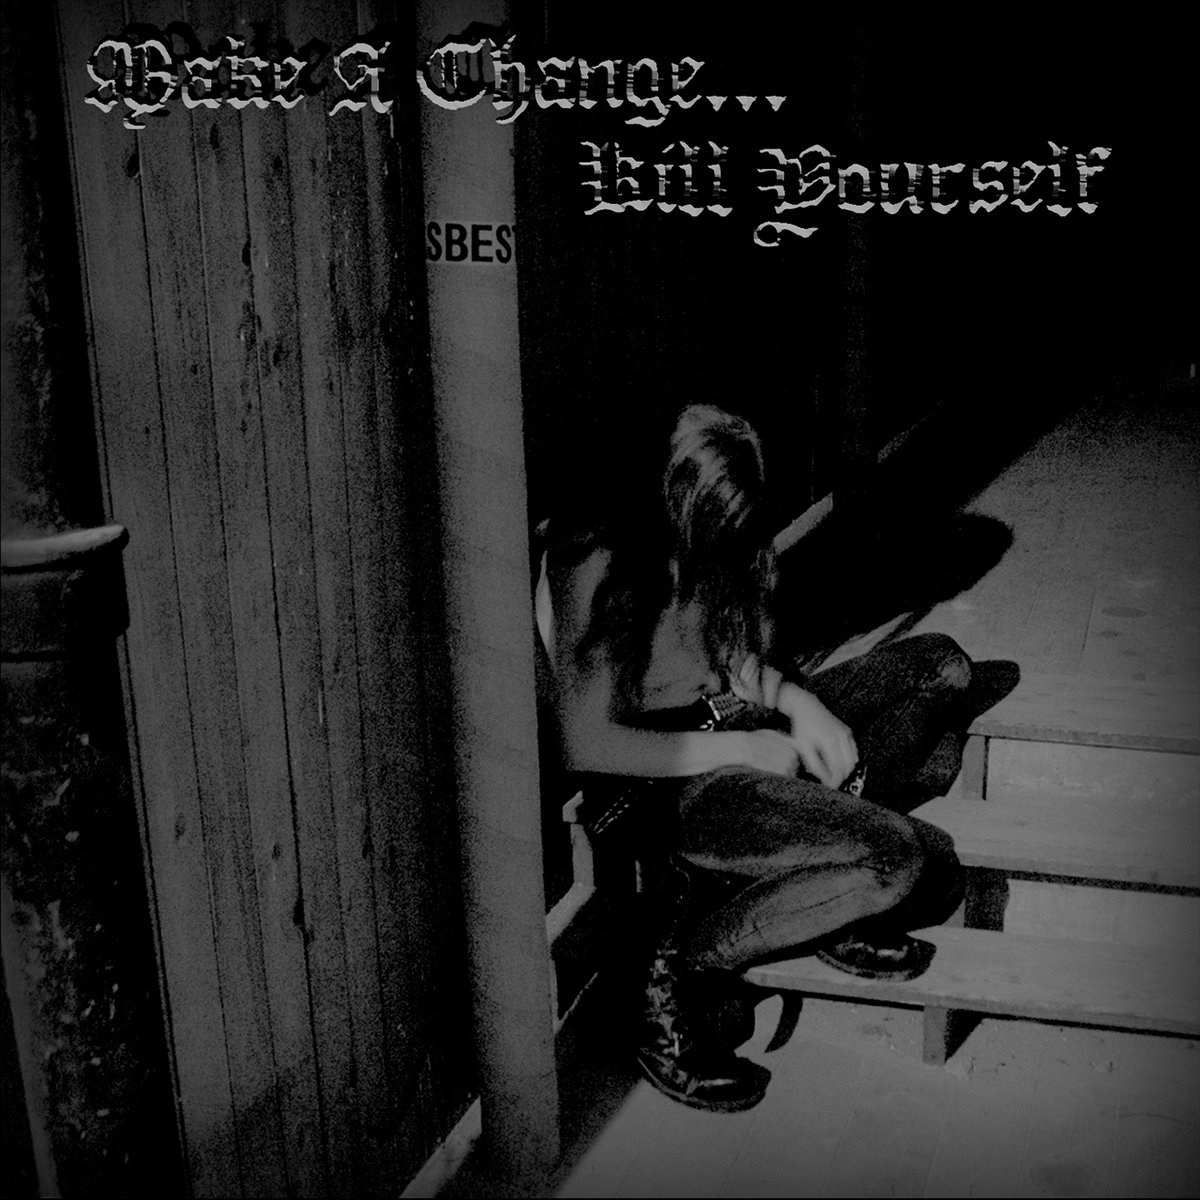 Reviews for Make a Change... Kill Yourself - Make a Change... Kill Yourself